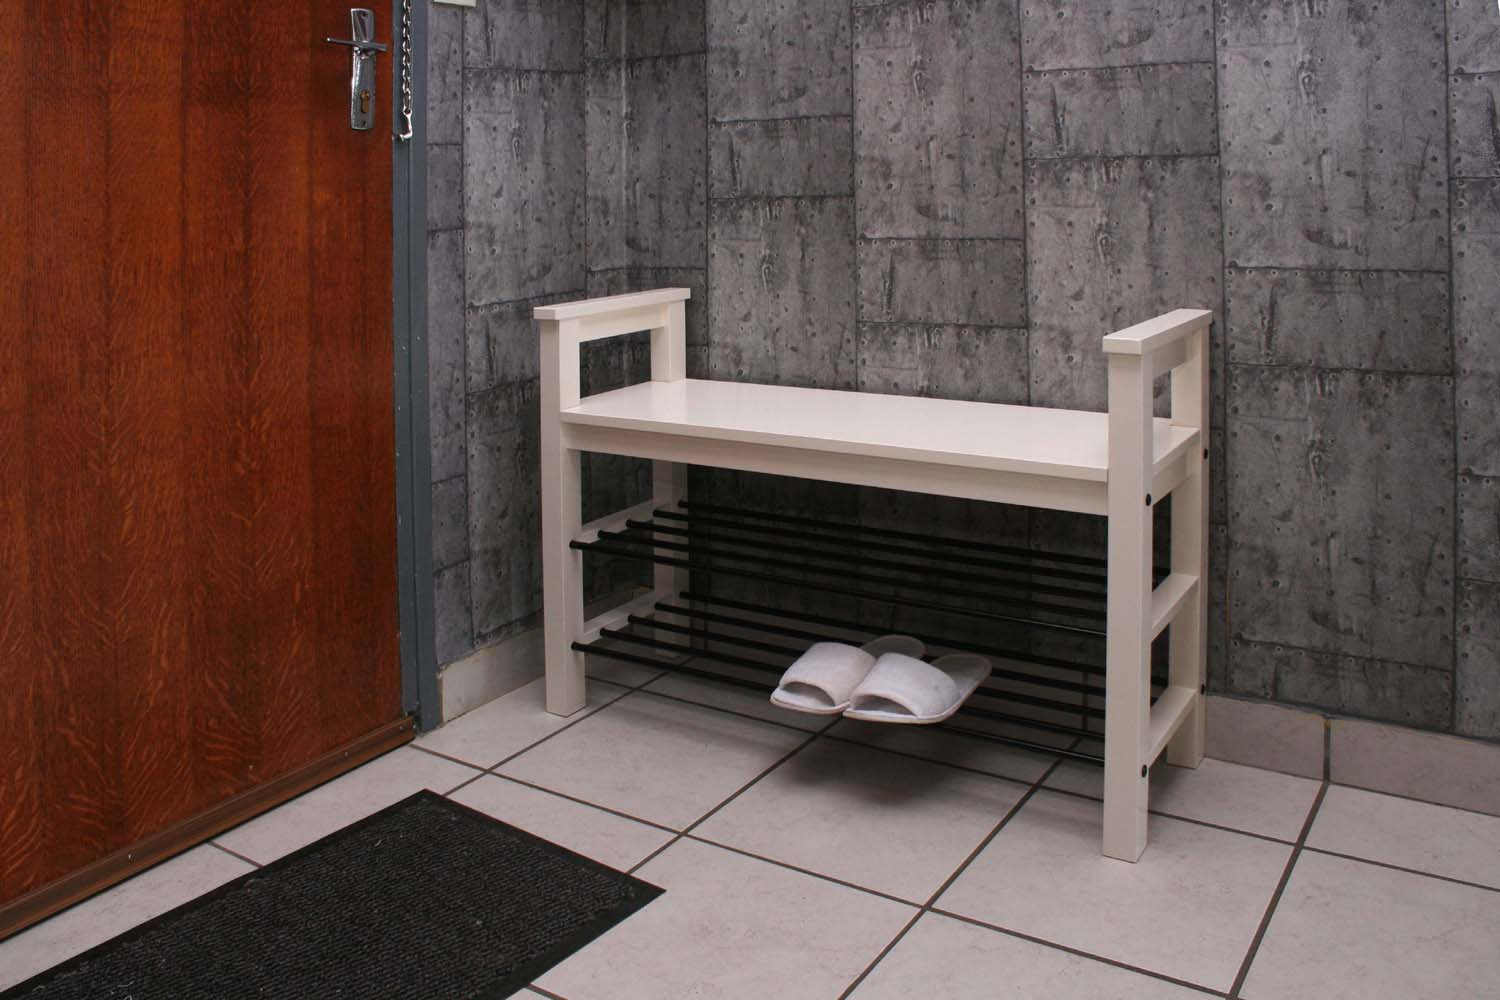 Bench with shoe rack in lobby